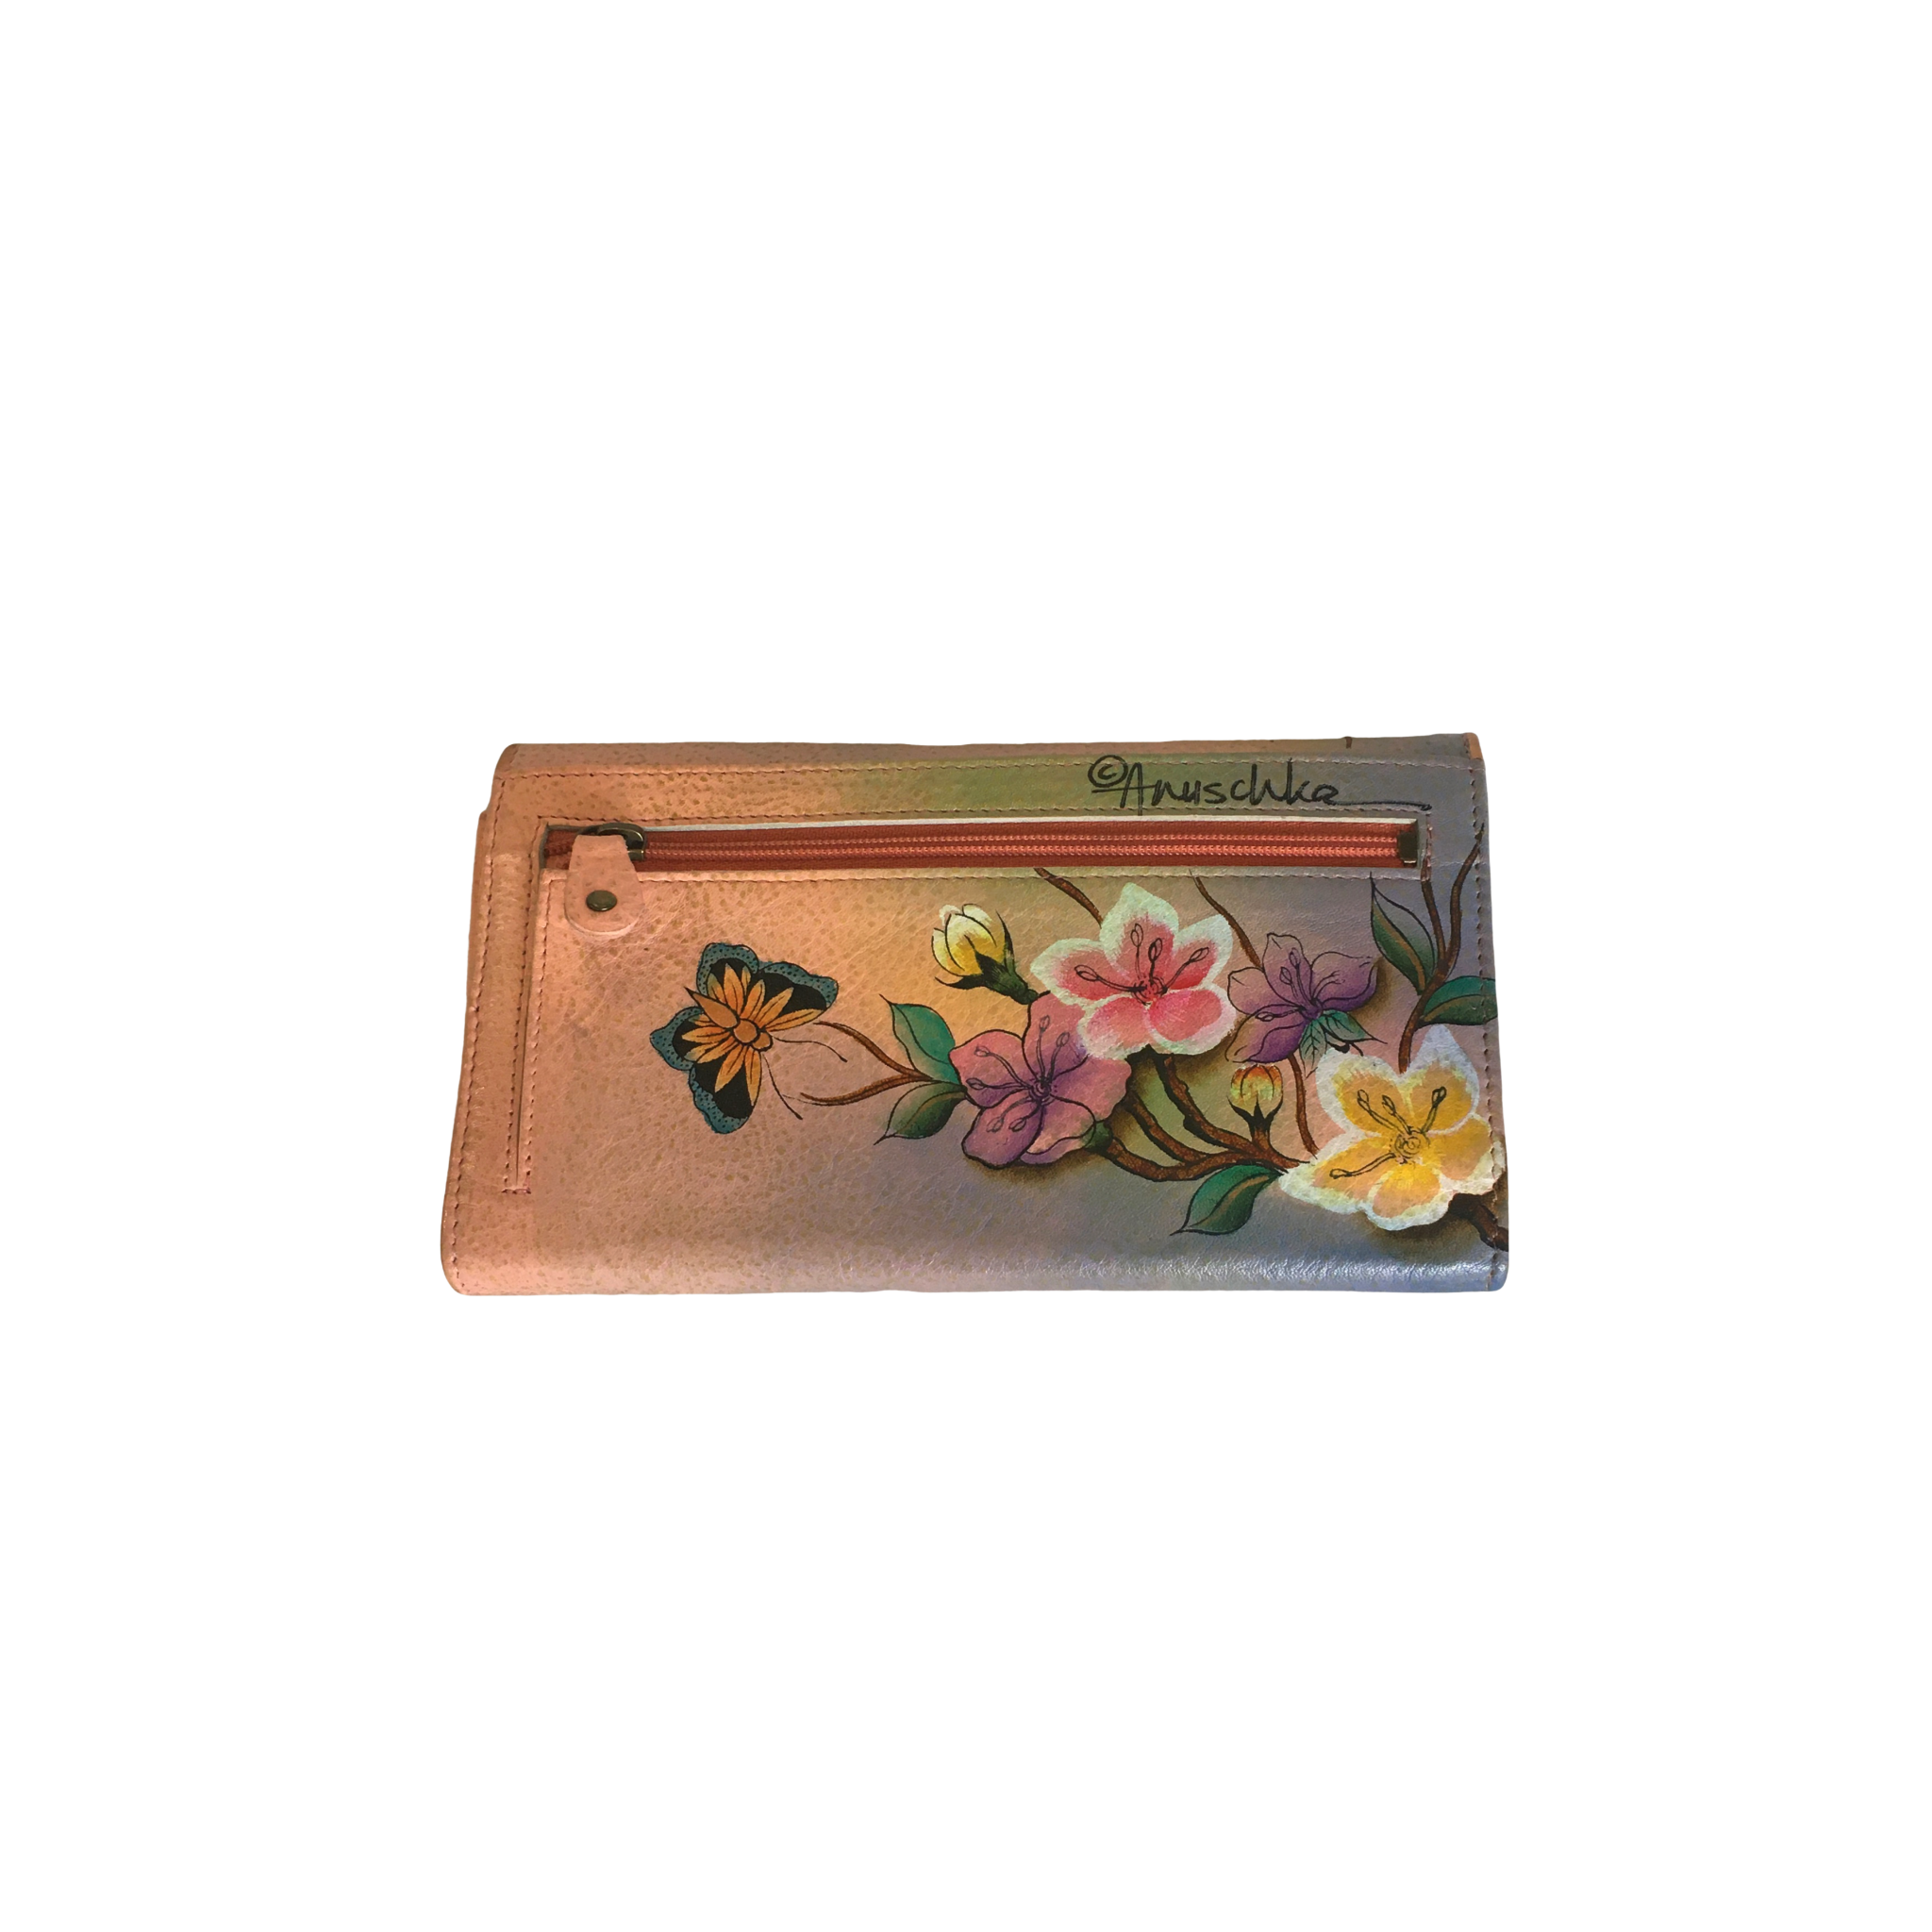 Anuschka triple fold clutch wallet 1043 jpg